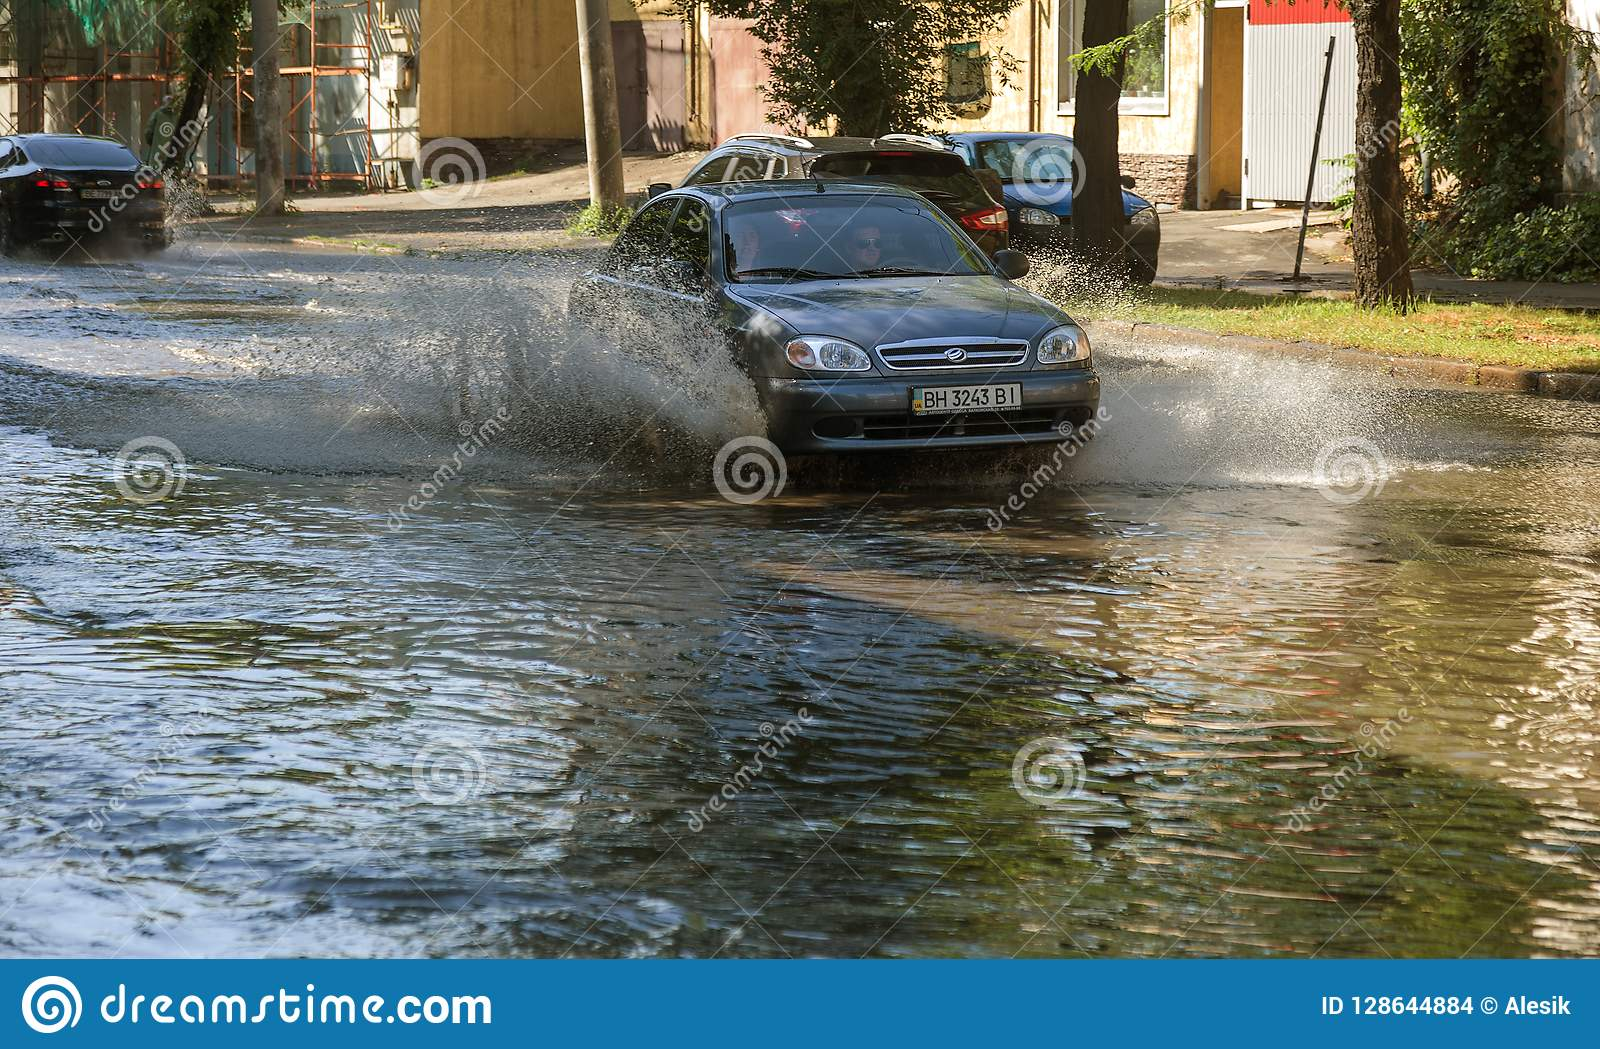 Odessa, Ukraine -3 July 2018: Driving cars on a flooded road during floods caused by rain storms. Cars float on water, flooding st